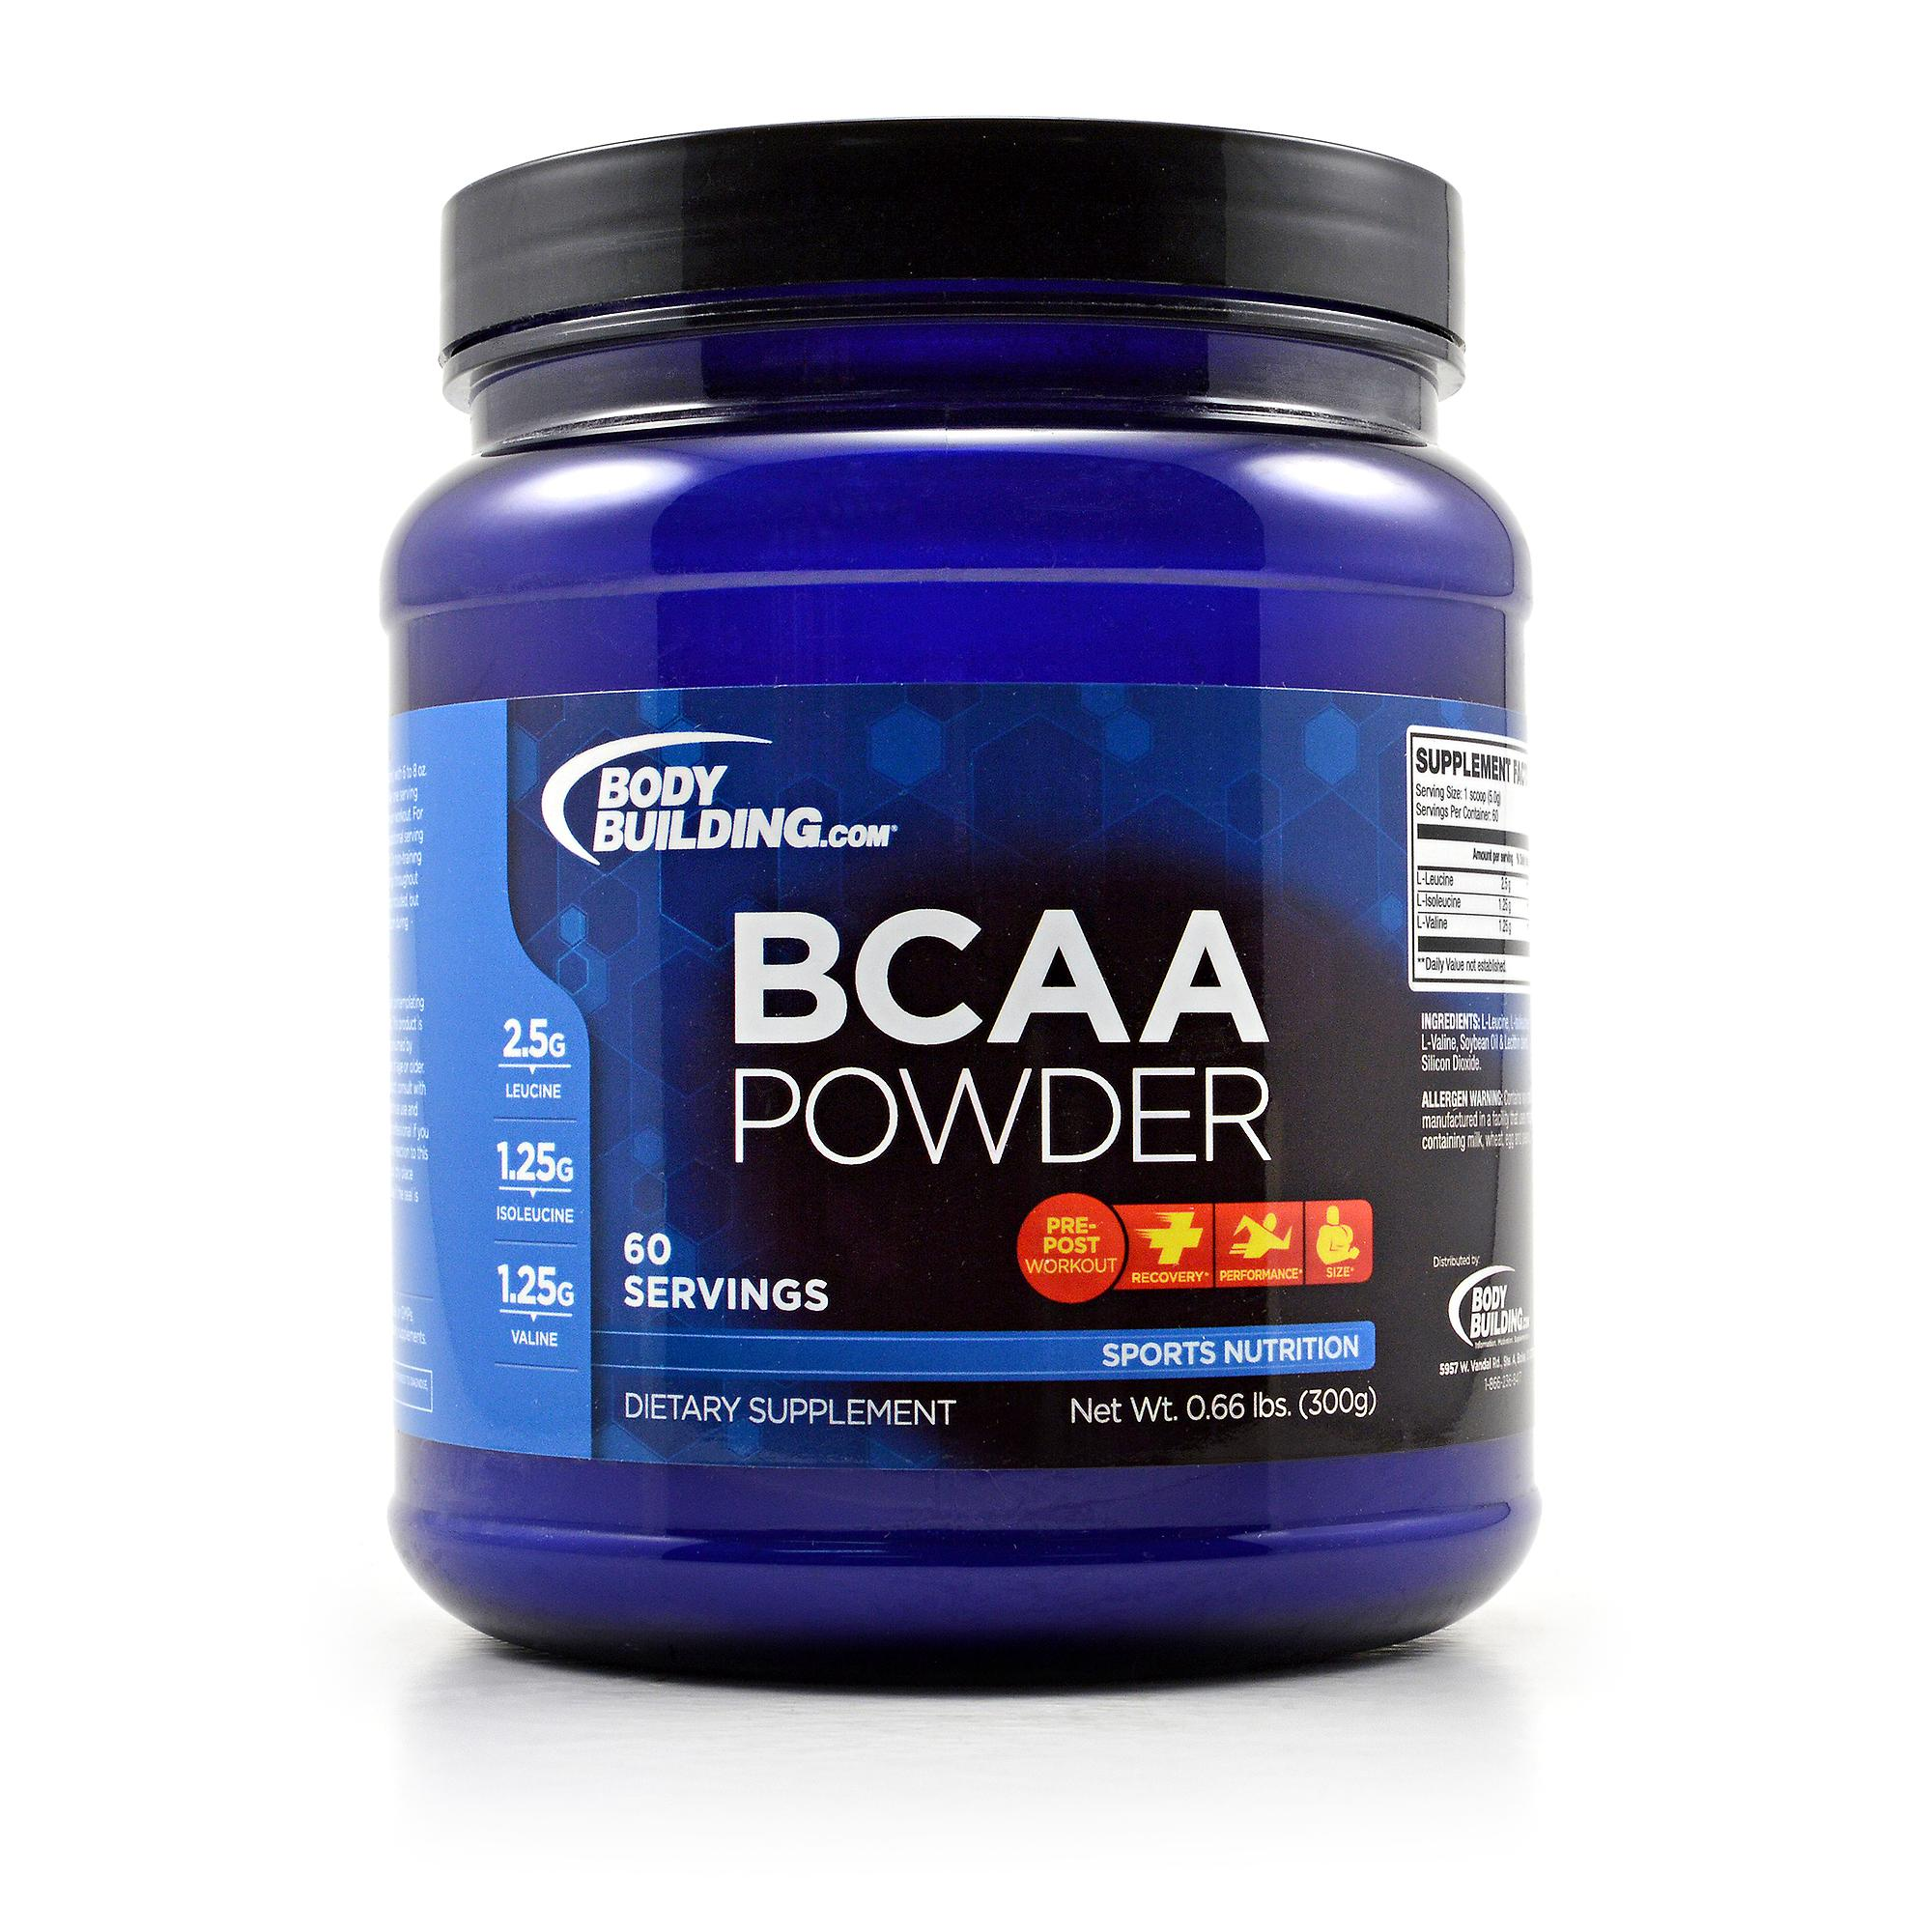 Bodybuilding.com BCAA Powder Review - LabDoor